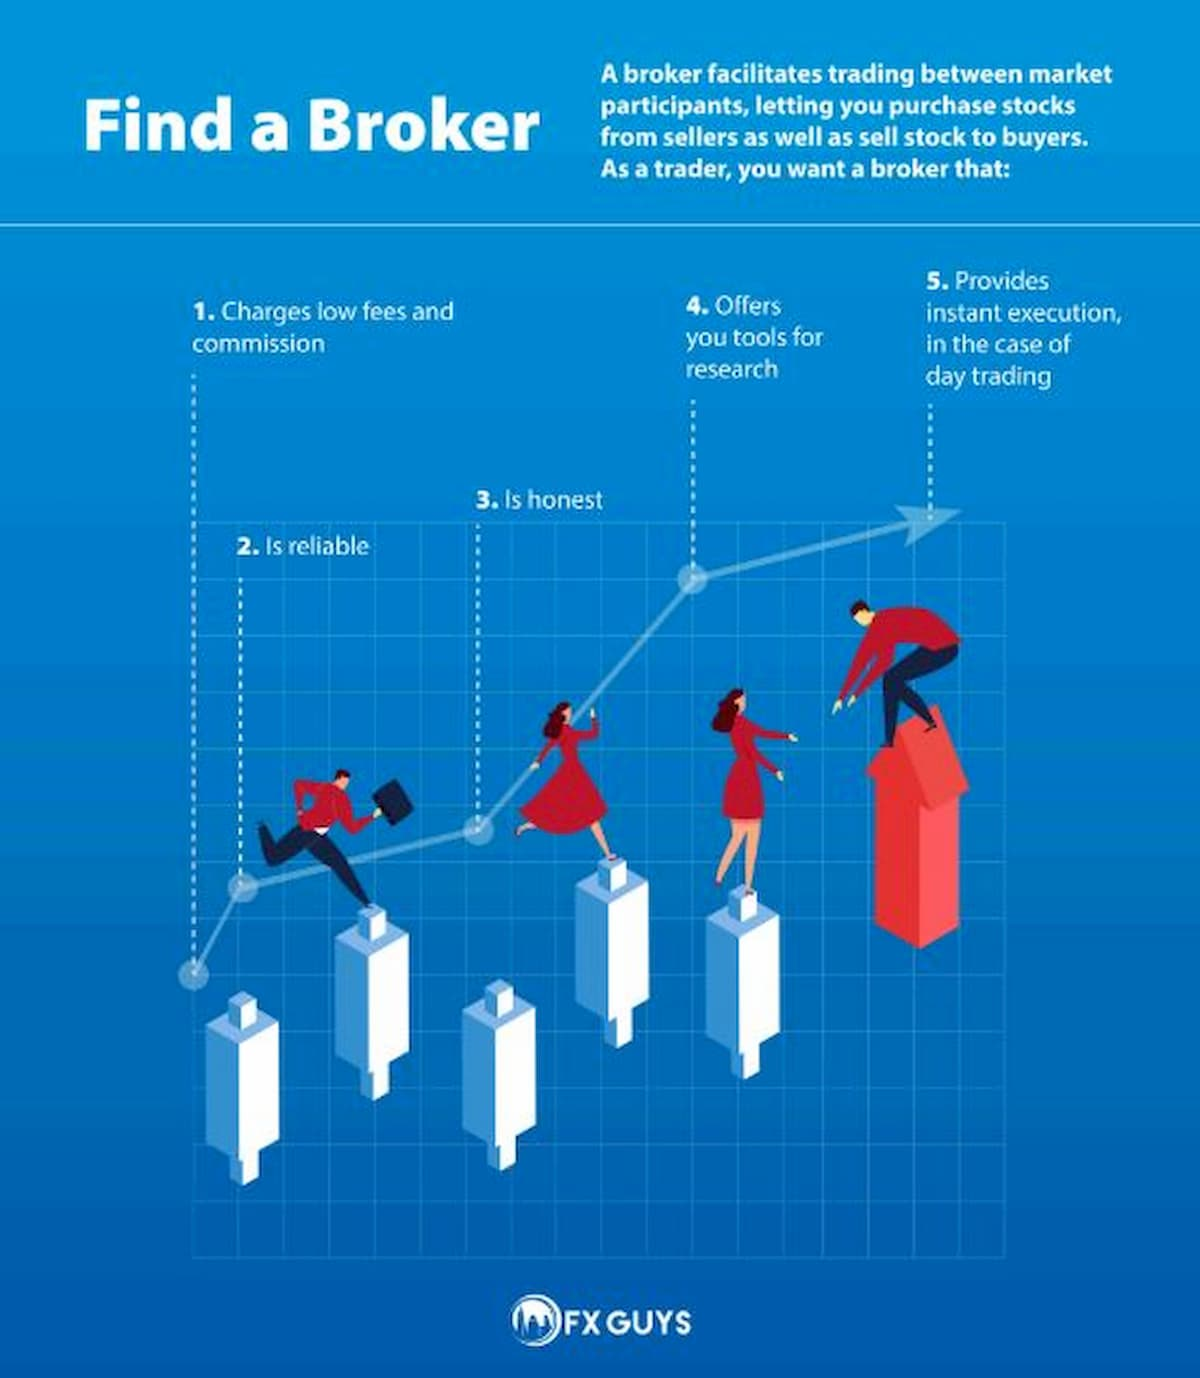 find a broker - infographic